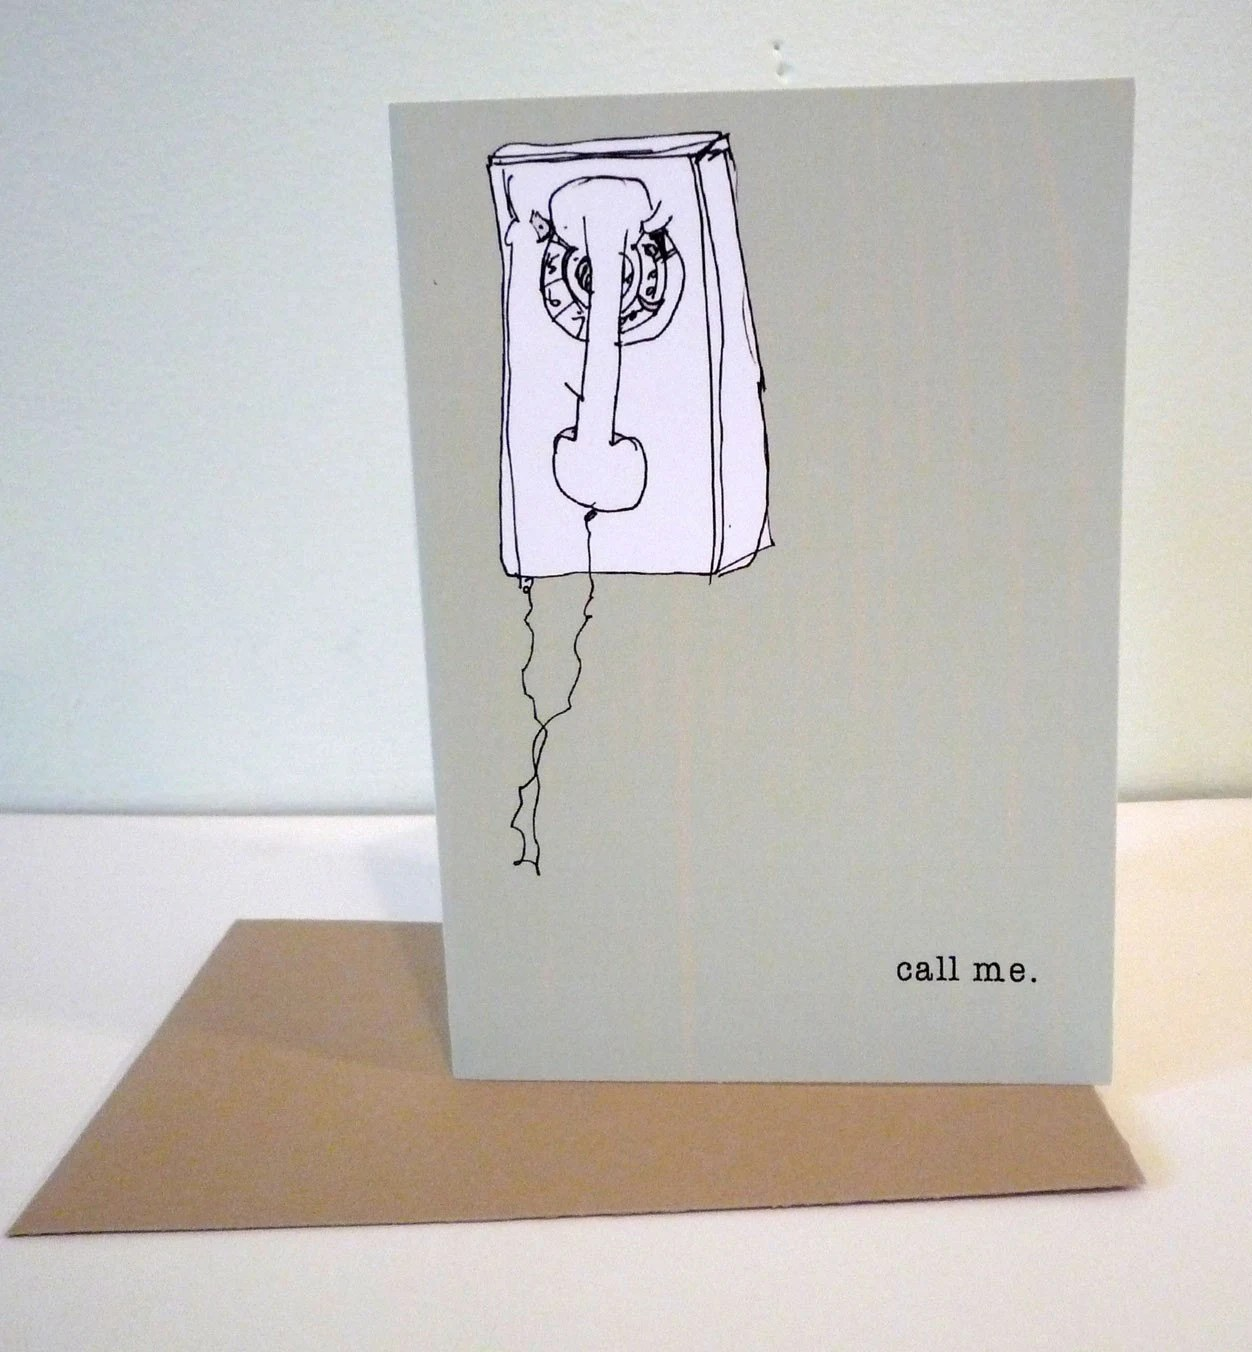 the artsy call me card